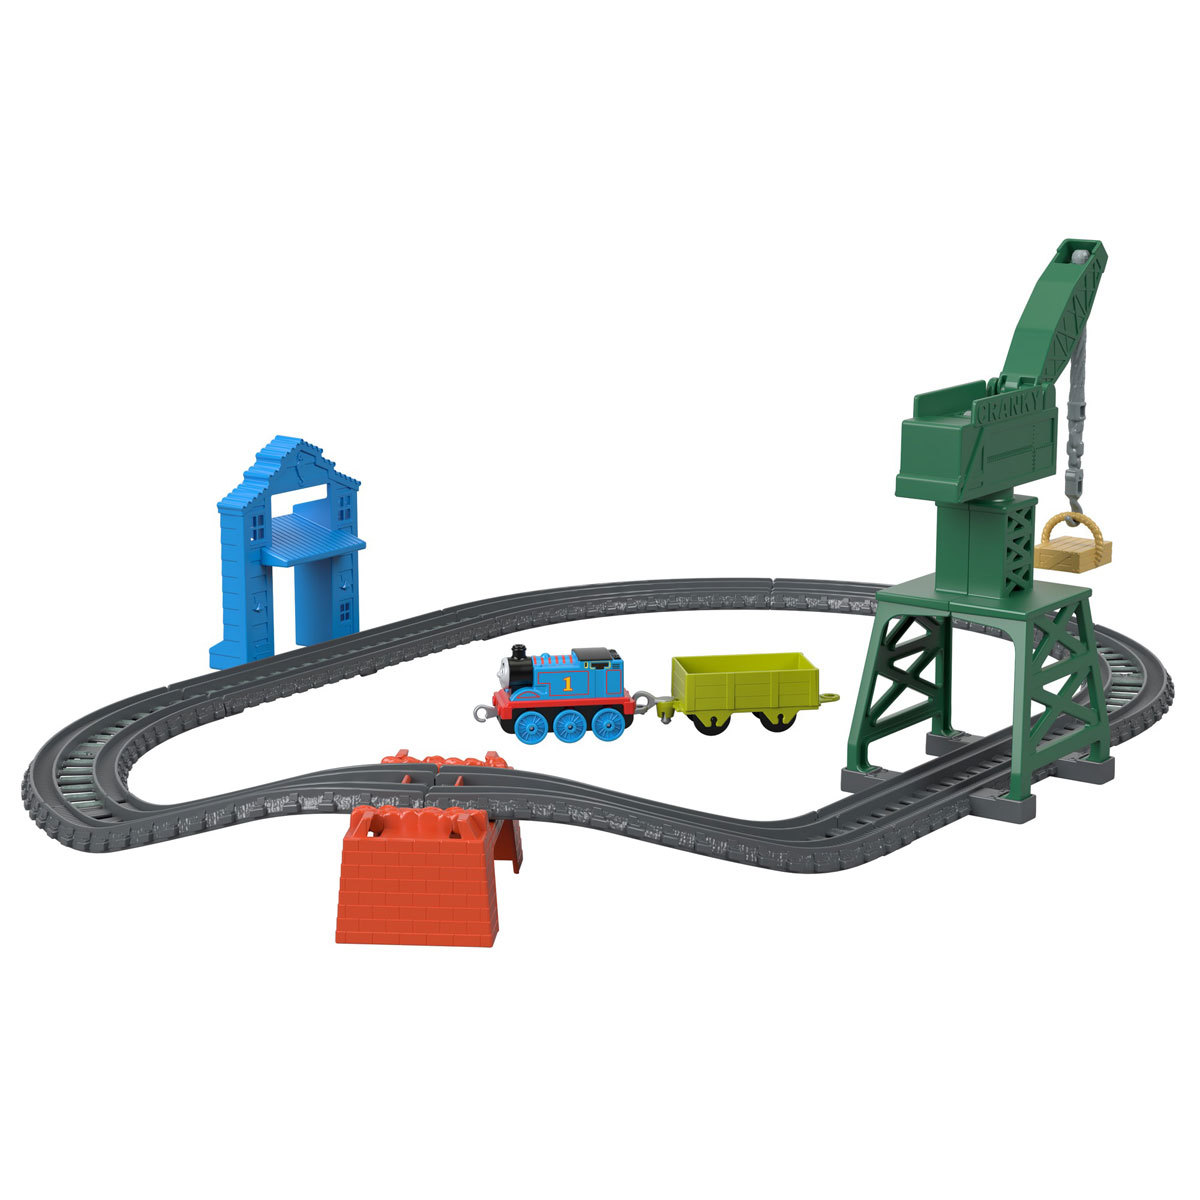 Fisher-Price Thomas & Friends Trackmaster - Brendam Fish Market Train Set from Early Learning Center